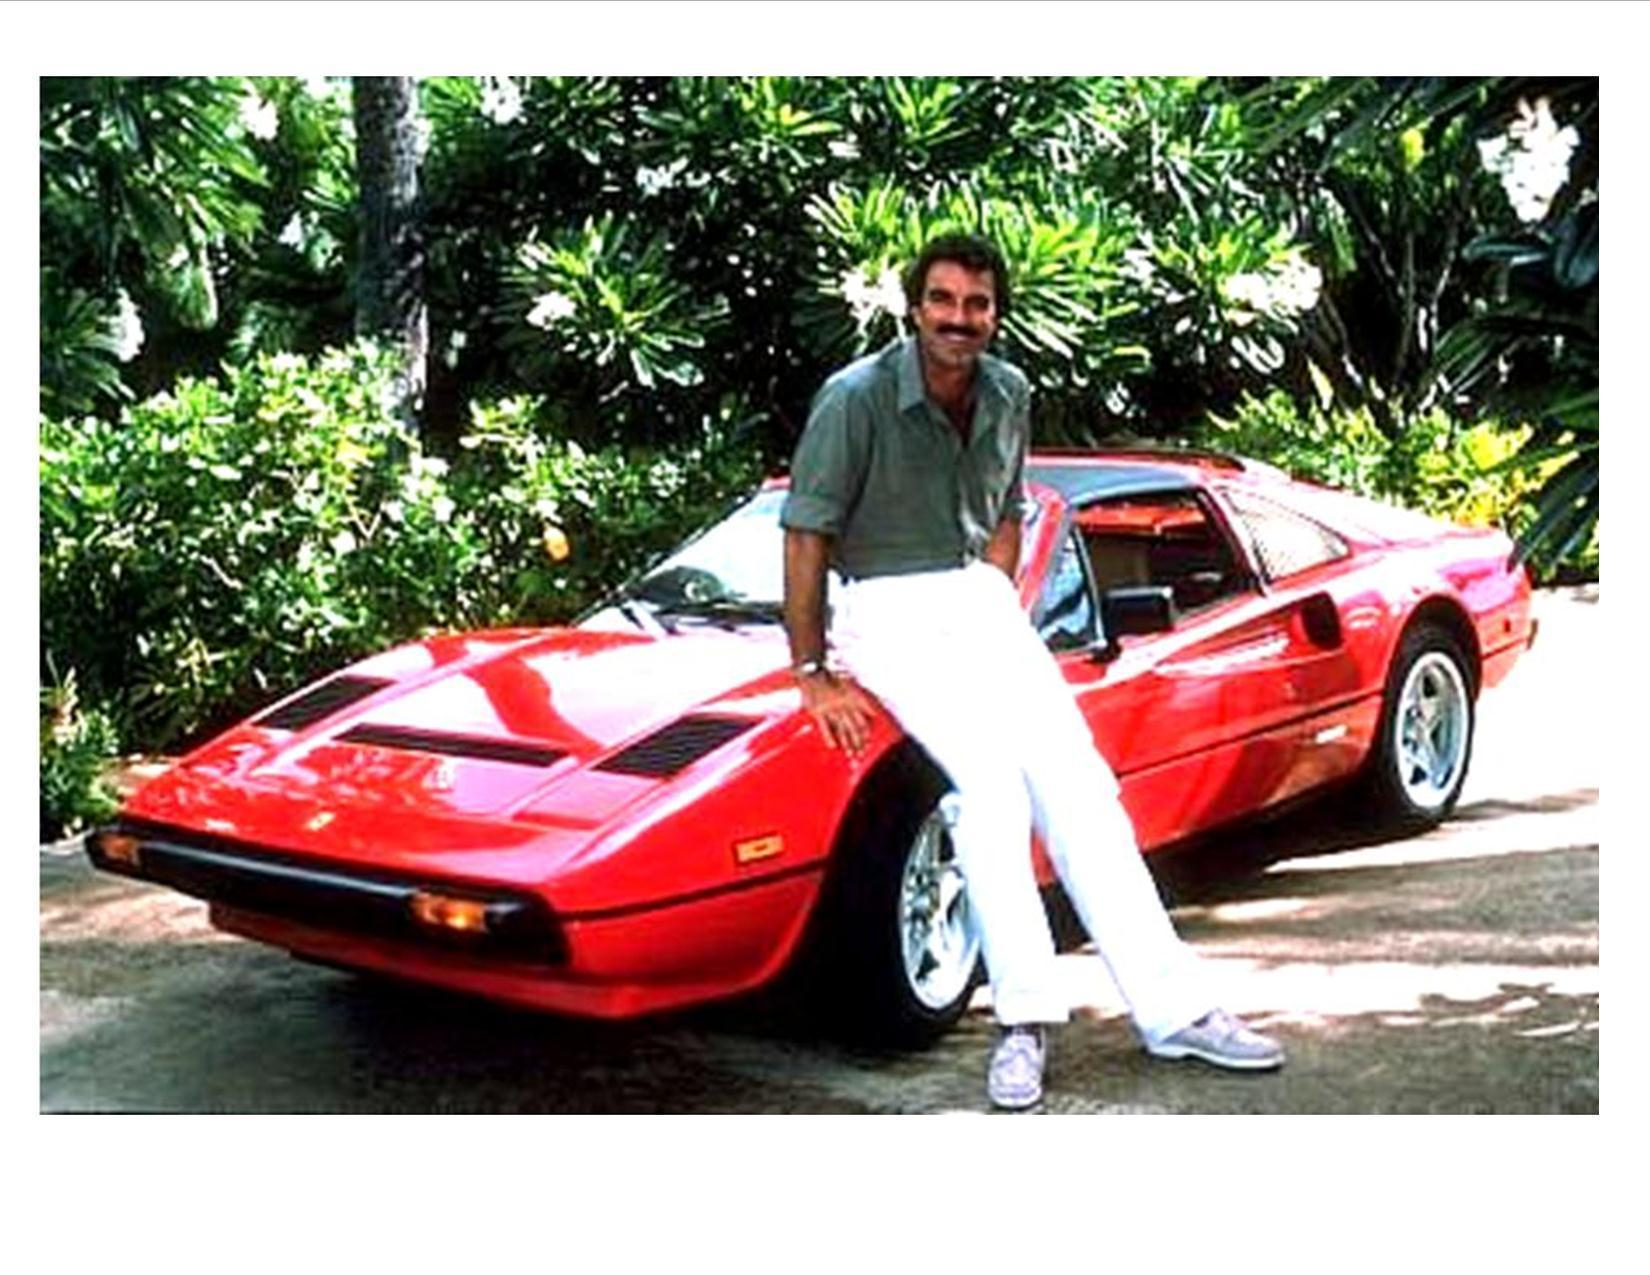 http://images4.fanpop.com/image/photos/21300000/Tom-Selleck-is-Magnum-P-I-magnum-pi-21382610-1650-1275.jpg